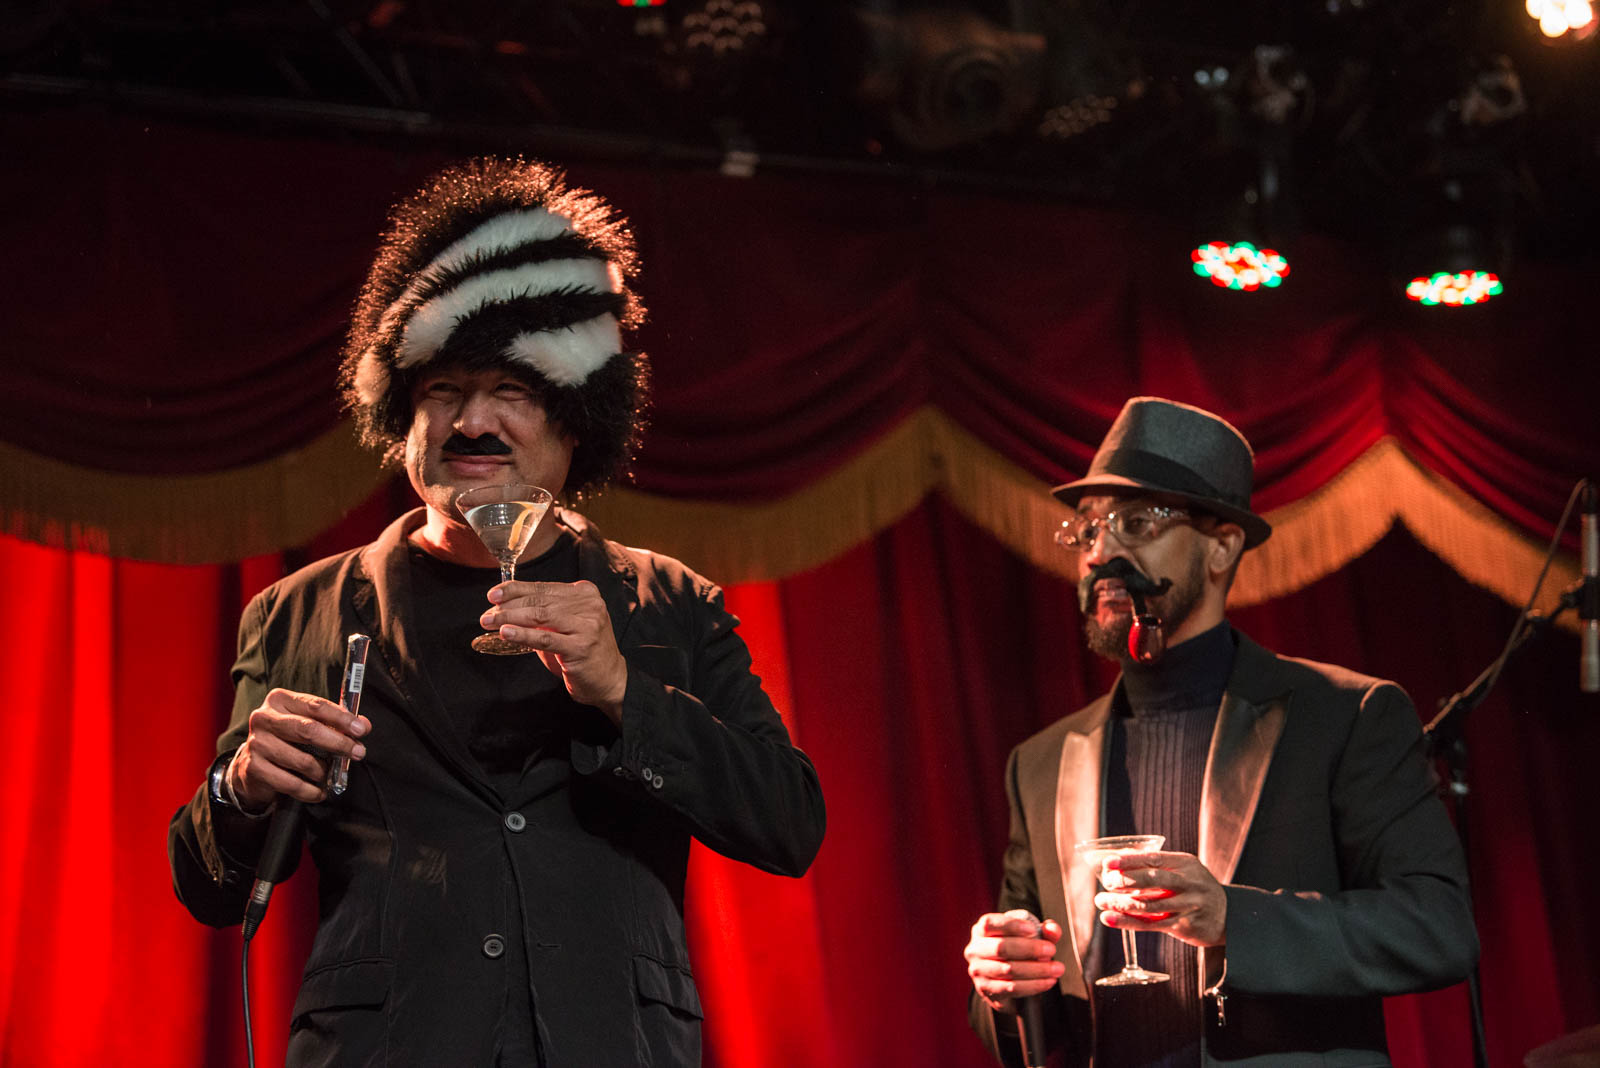 Nathaniel Merriweather (Dan the Automator) and Chest Rockwell (Prince Paul) of Handsome Boy Modeling School on Thursday, April 5, 2018 at Brooklyn Bowl.